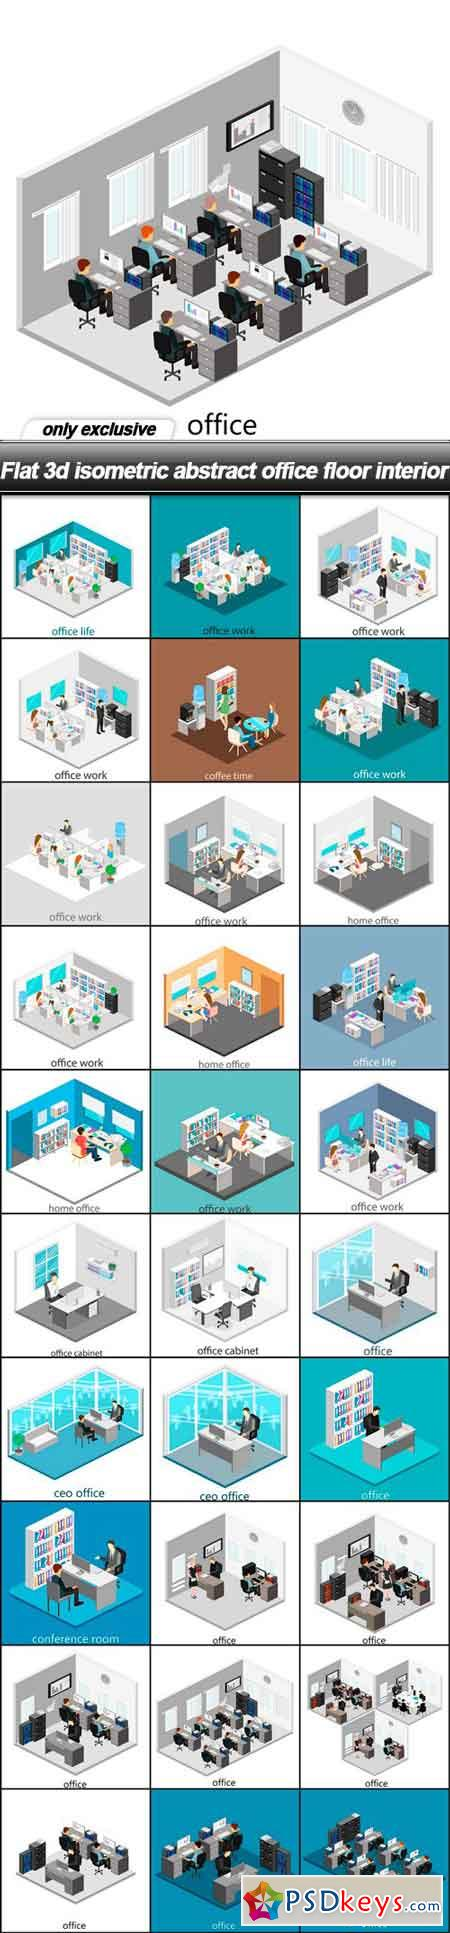 Flat 3d isometric abstract office floor interior - 30 EPS